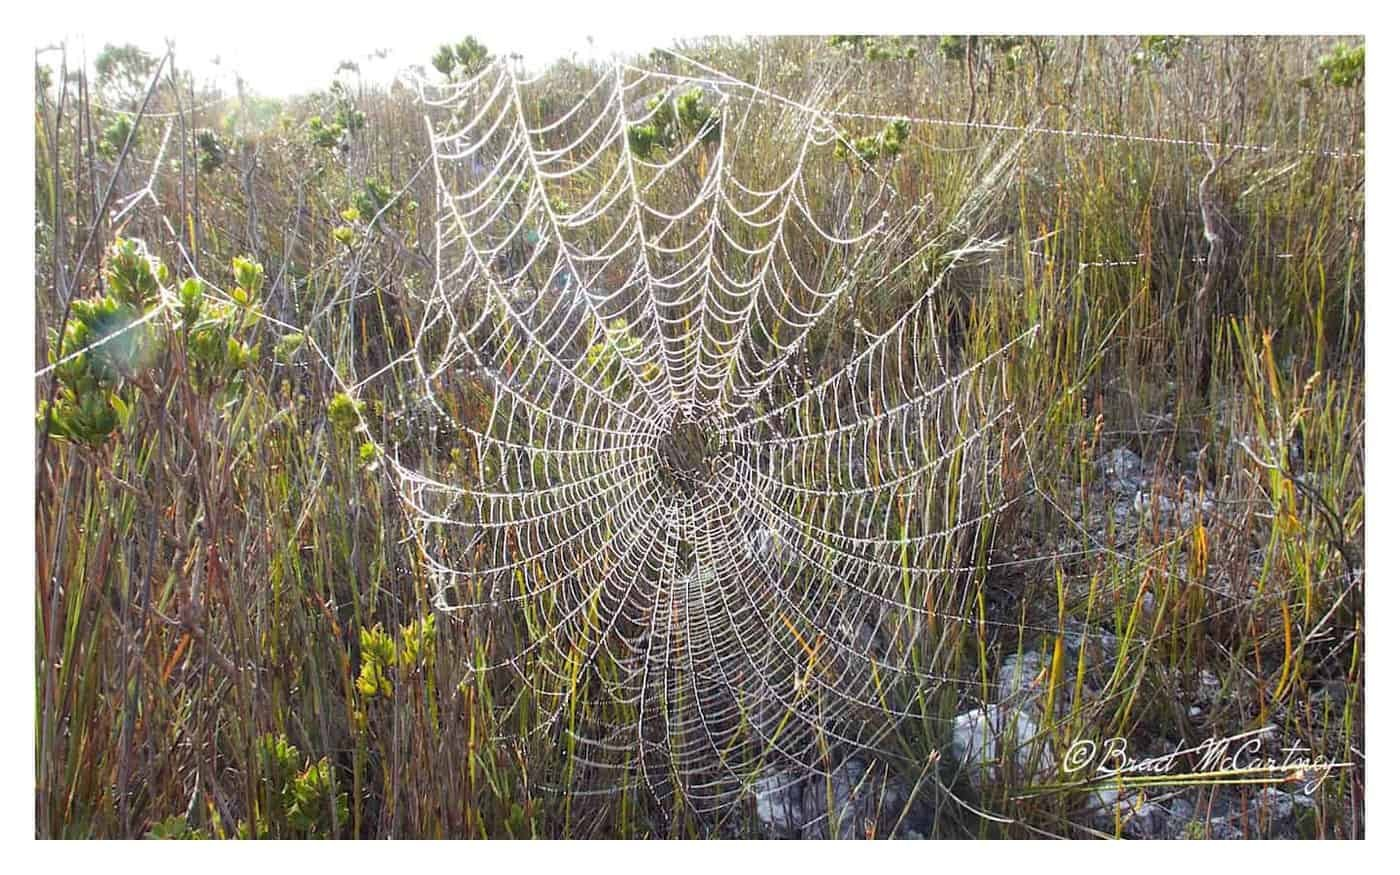 Early morning makes it easy to spot the spiders webs